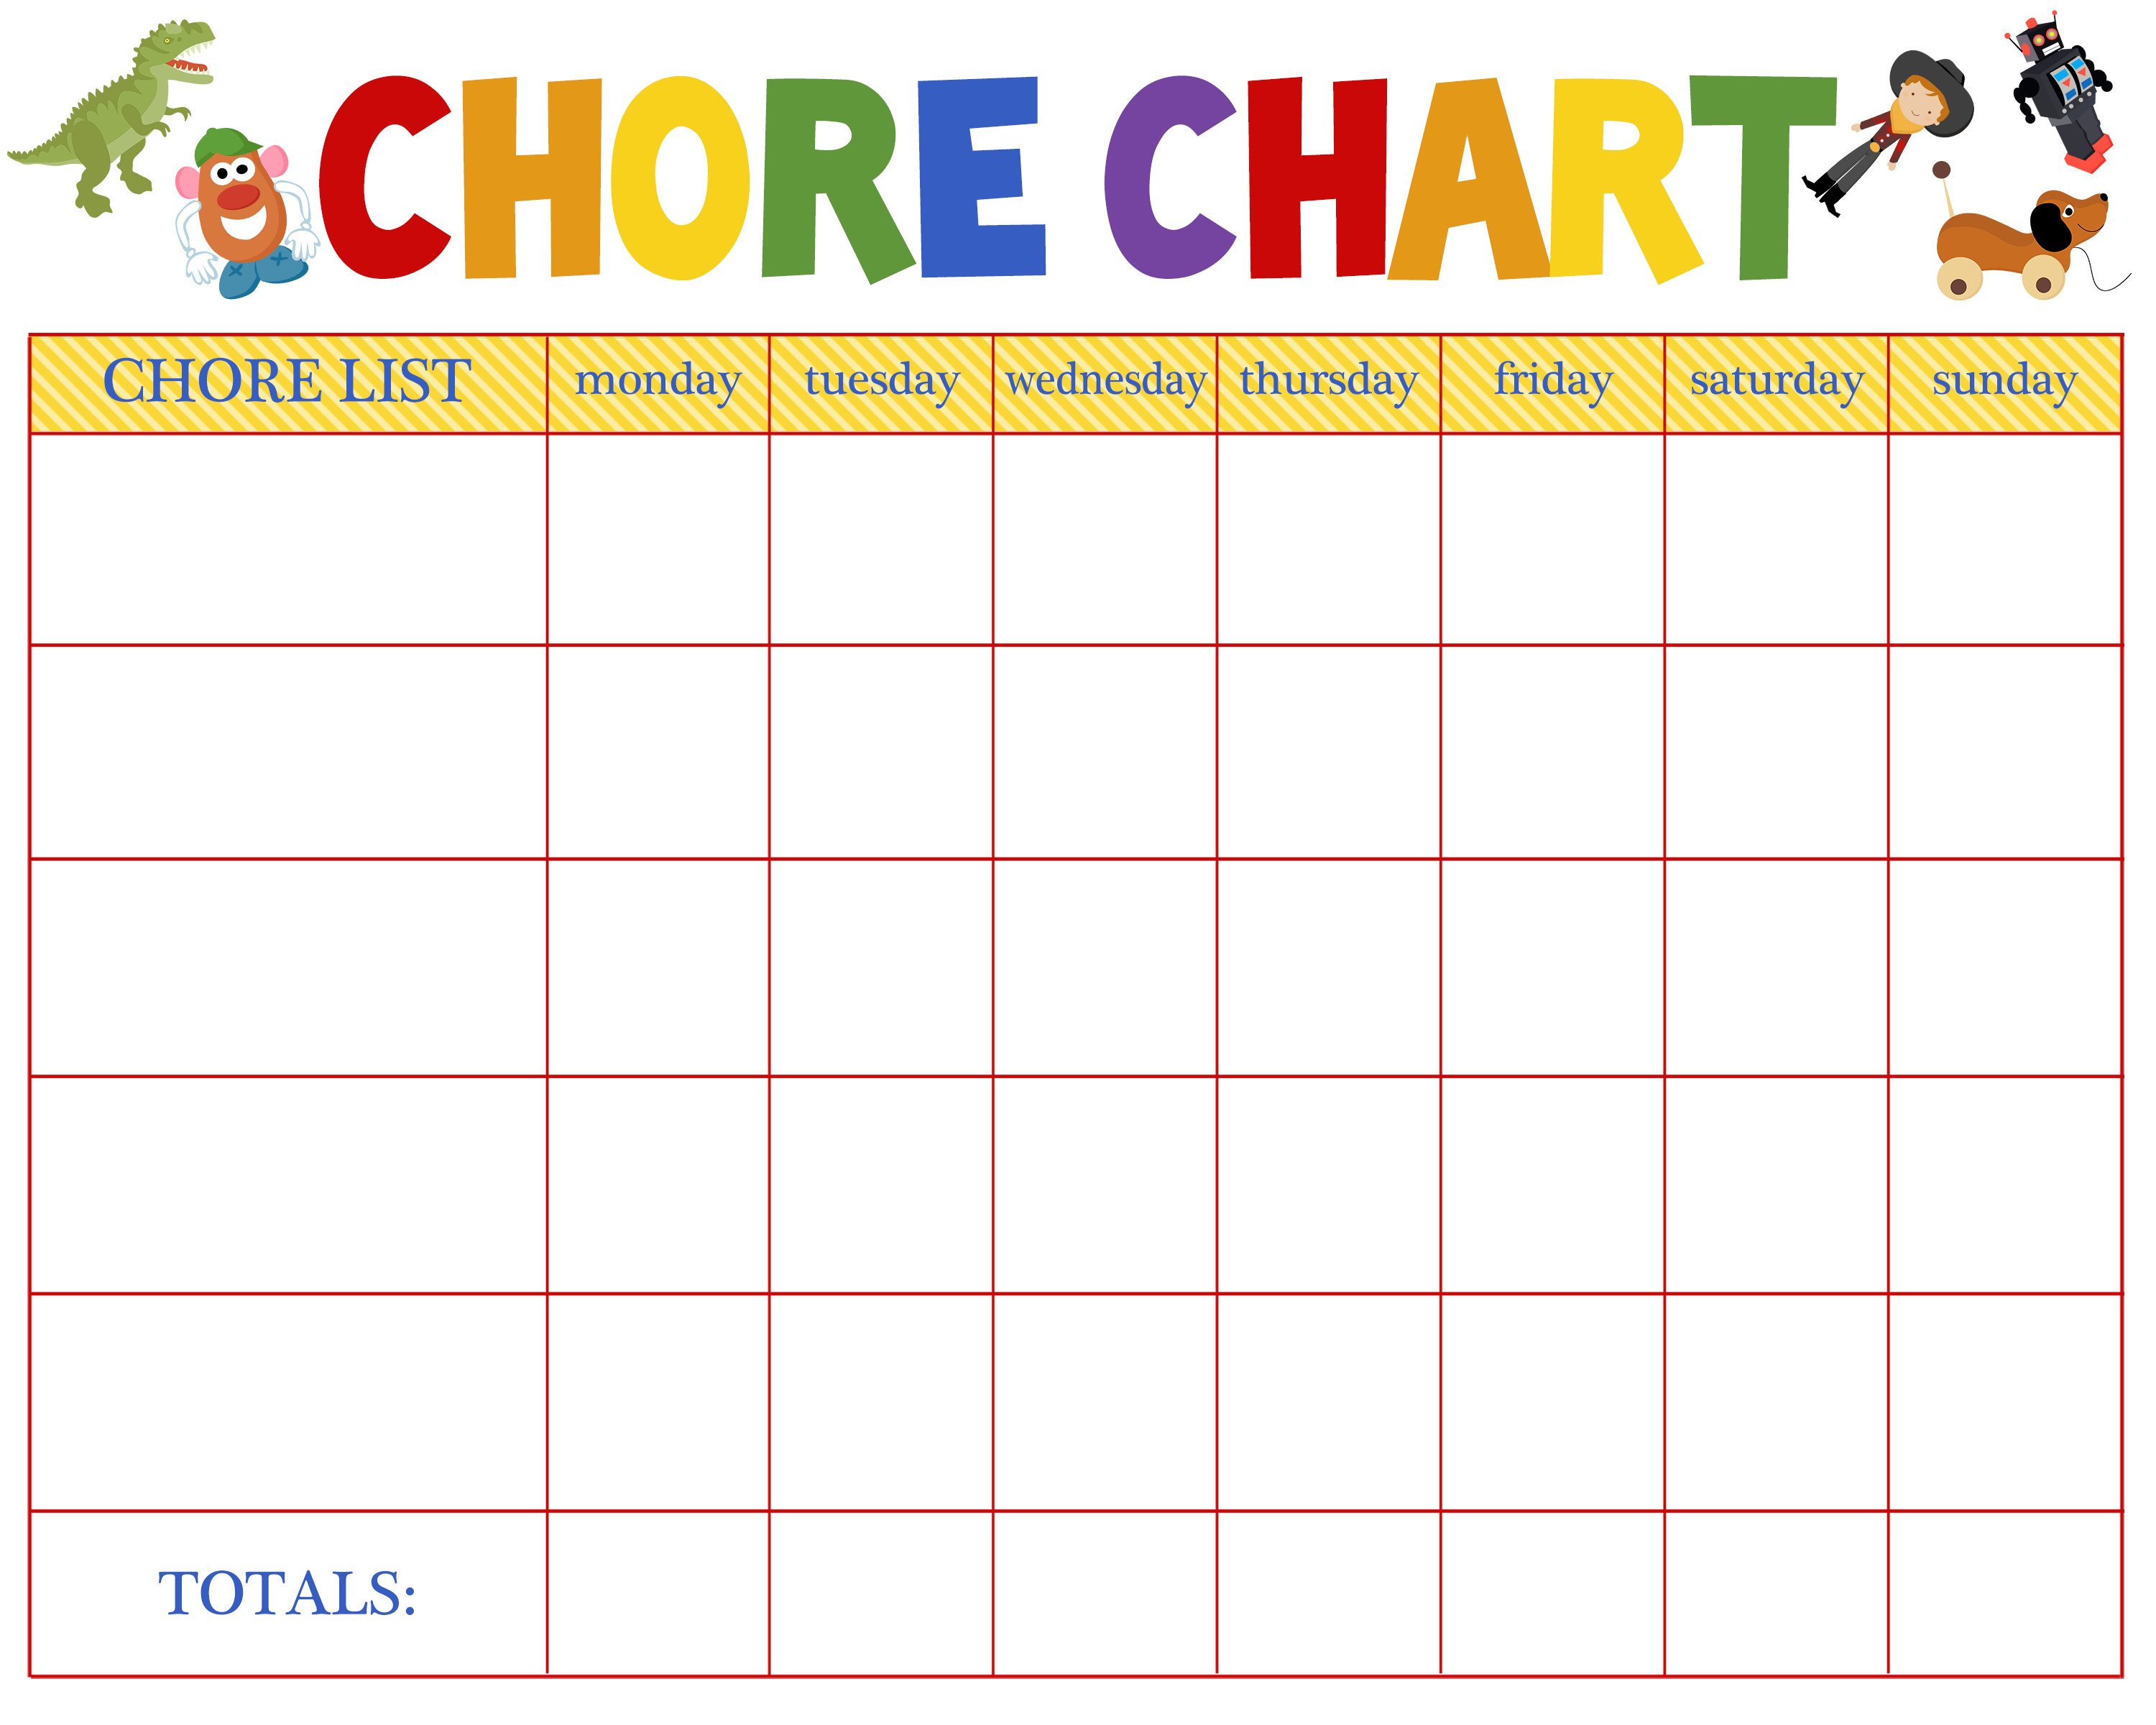 Chore Chart Templates Free Free Behavioral Aid Printables Jumping Jax Designs